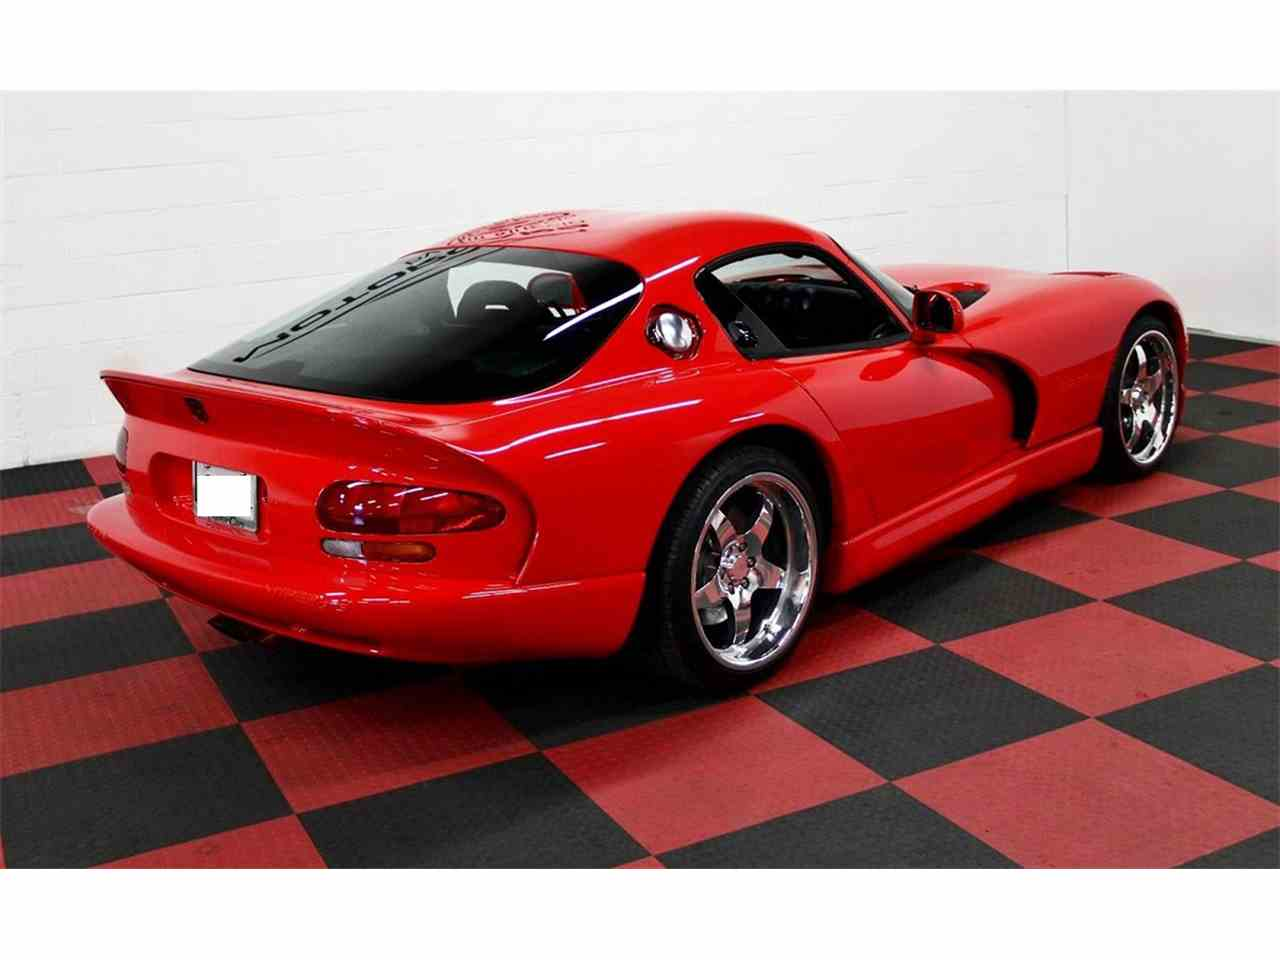 Large Picture of '98 Dodge Viper located in Illinois - $47,000.00 - LSFT